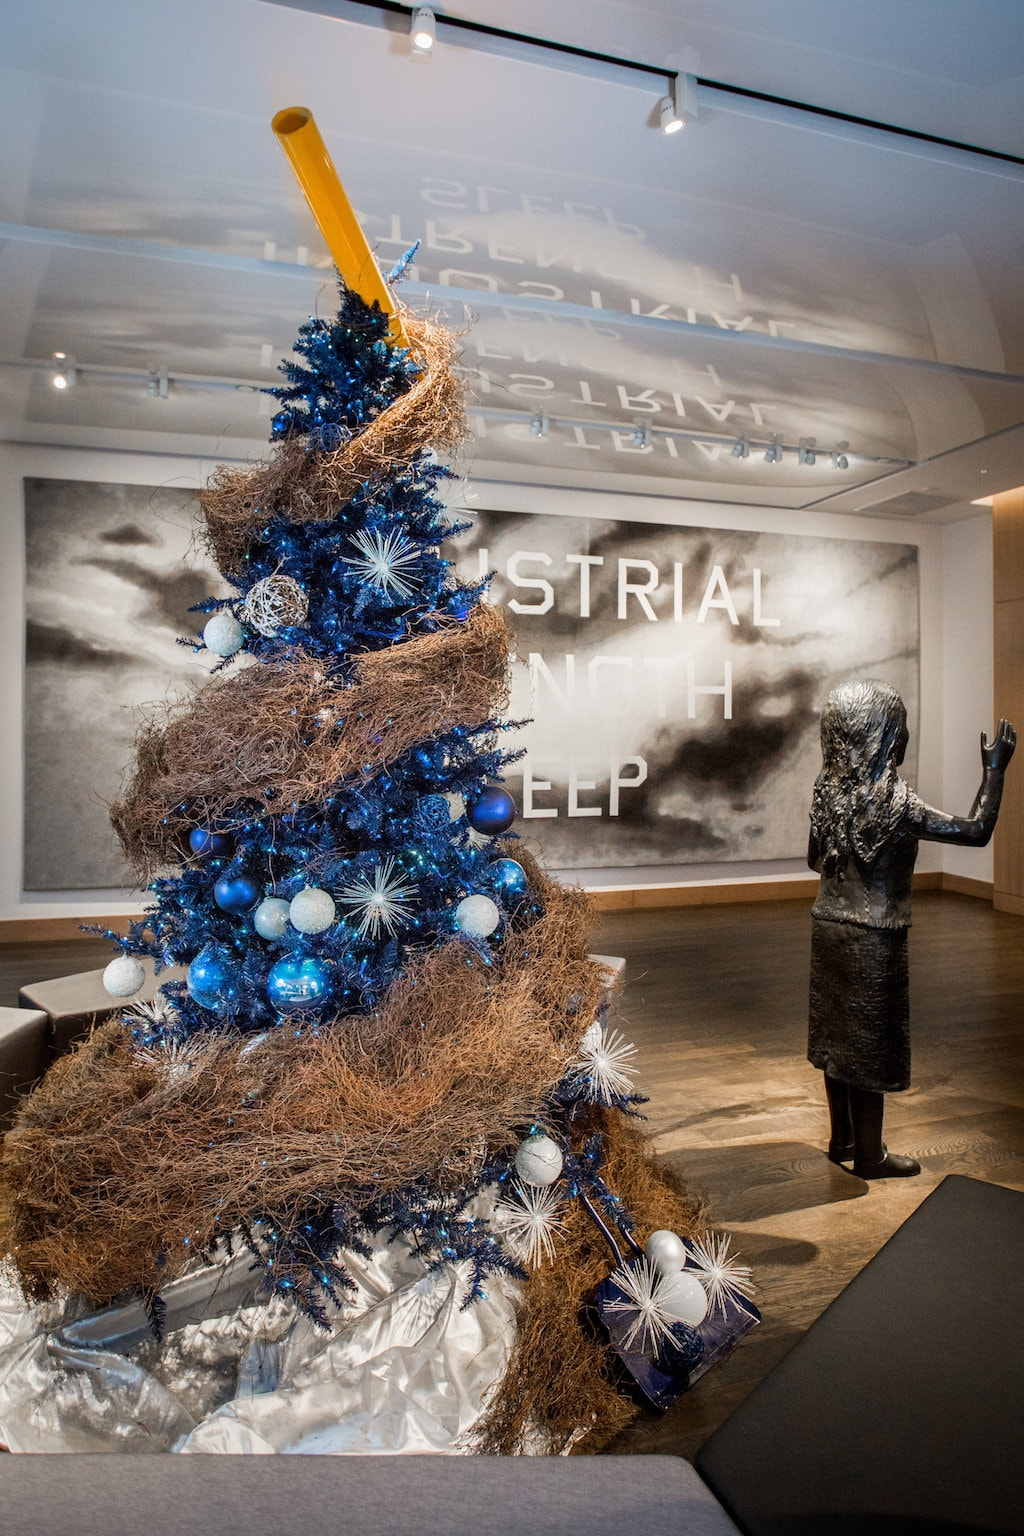 The Claes Oldenburg tree in front of Ed Ruscha's <em>Industrial Strength Sleep</em> (2007) | Courtesy of the ART, a hotel.